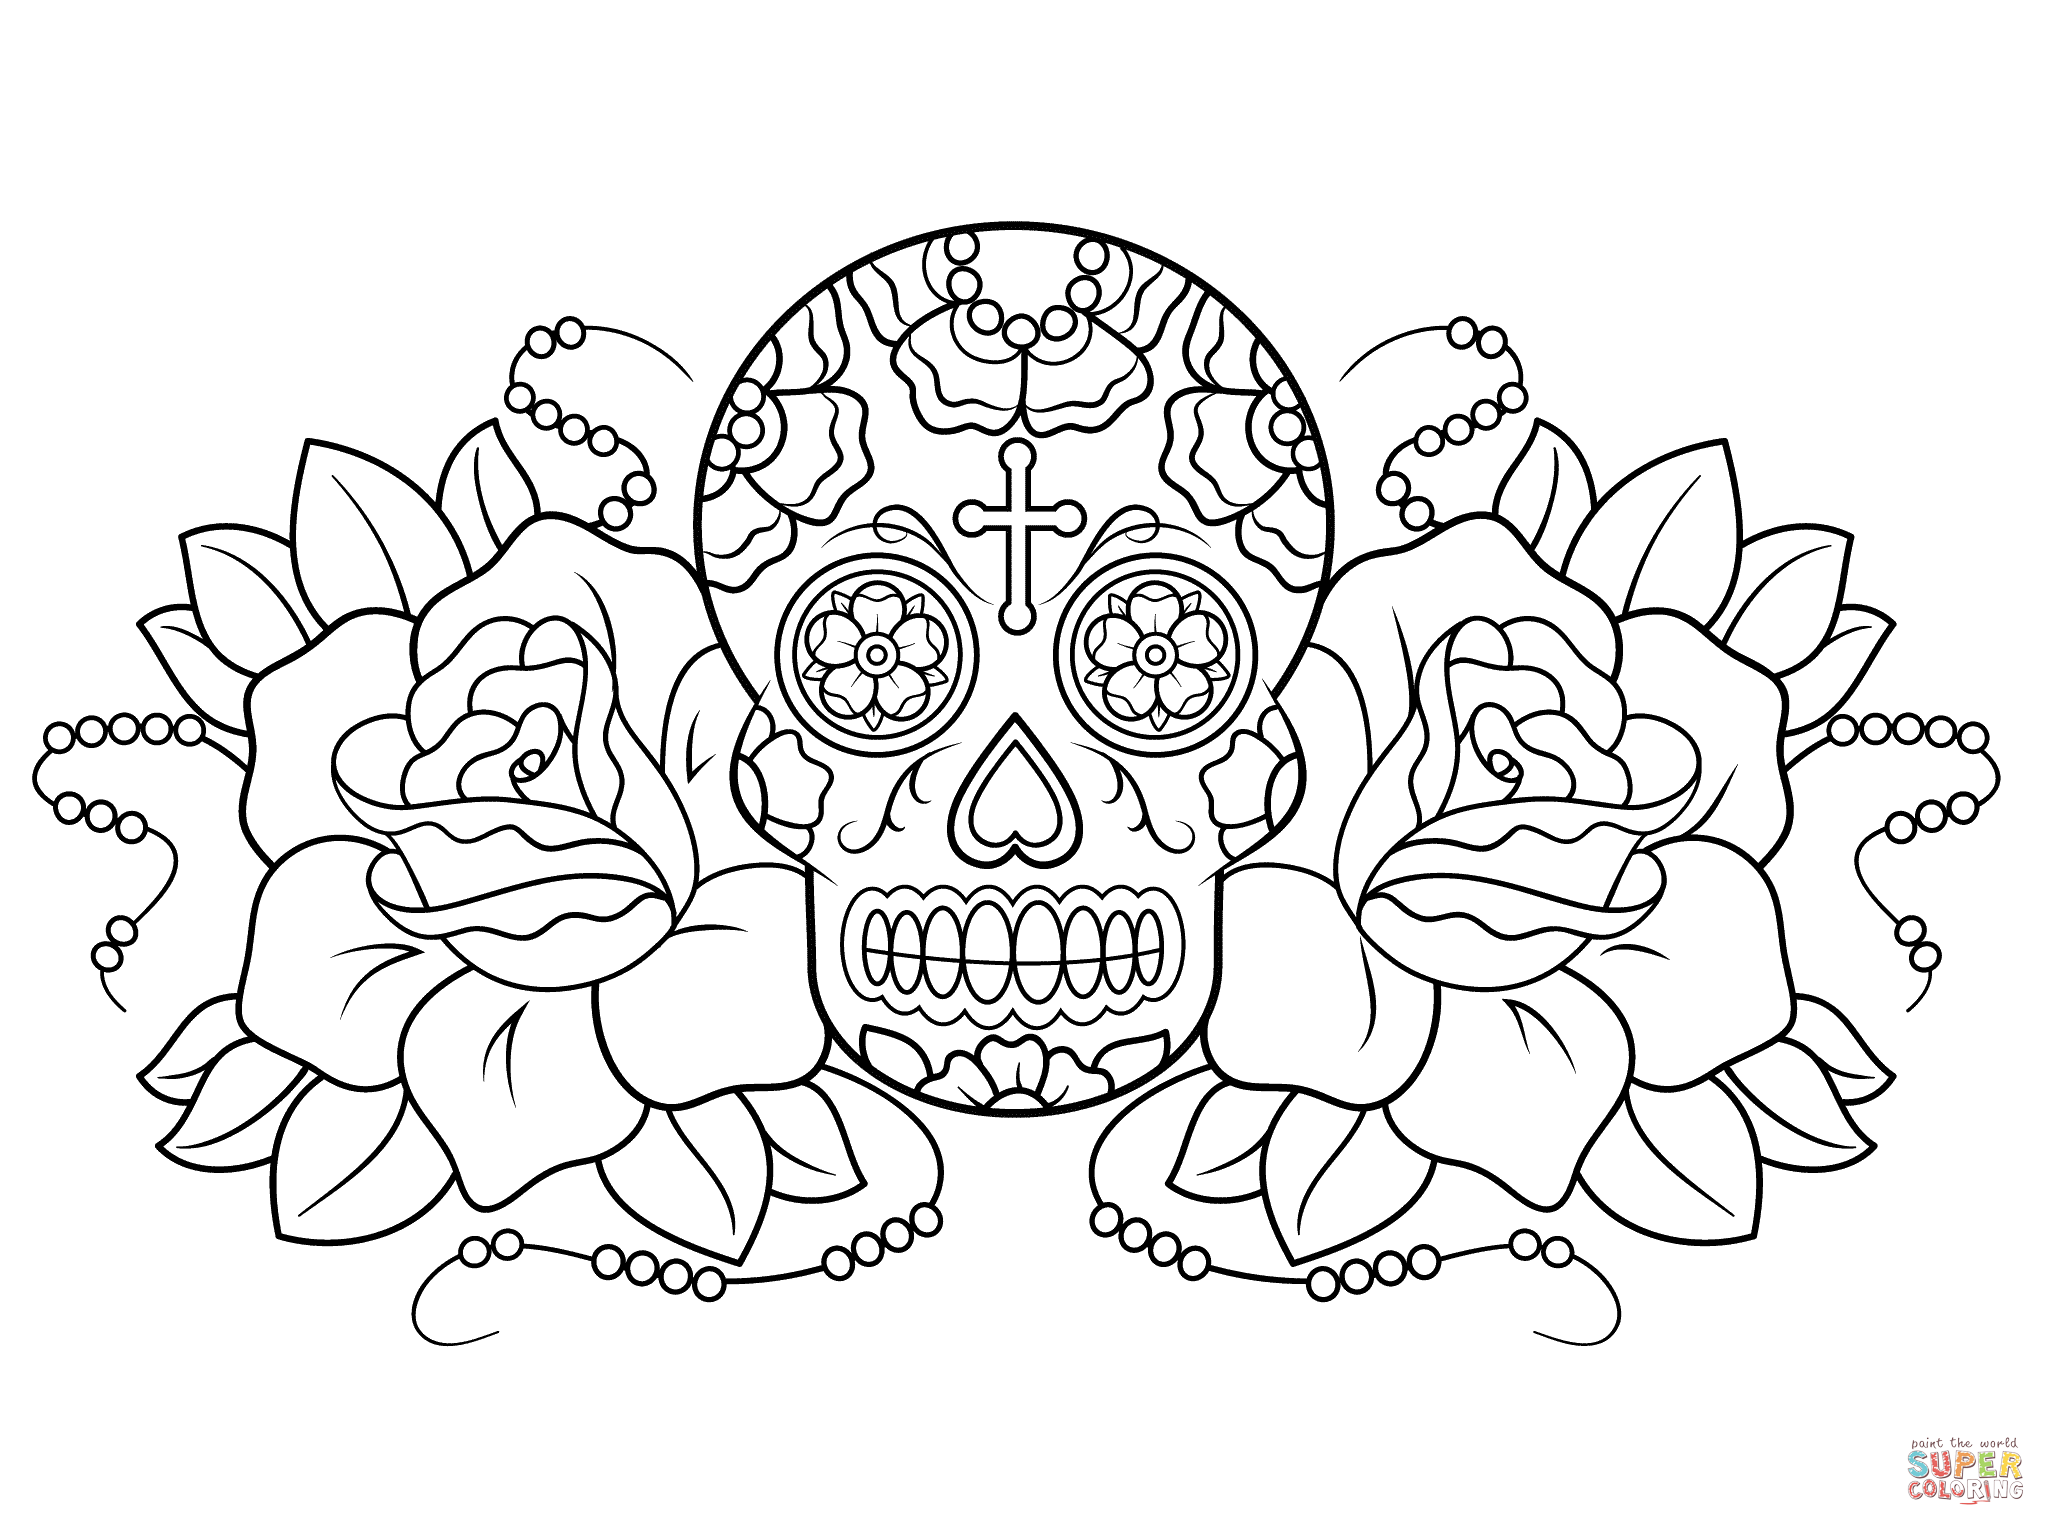 2046x1526 sugar skull and roses coloring page free printable coloring pages